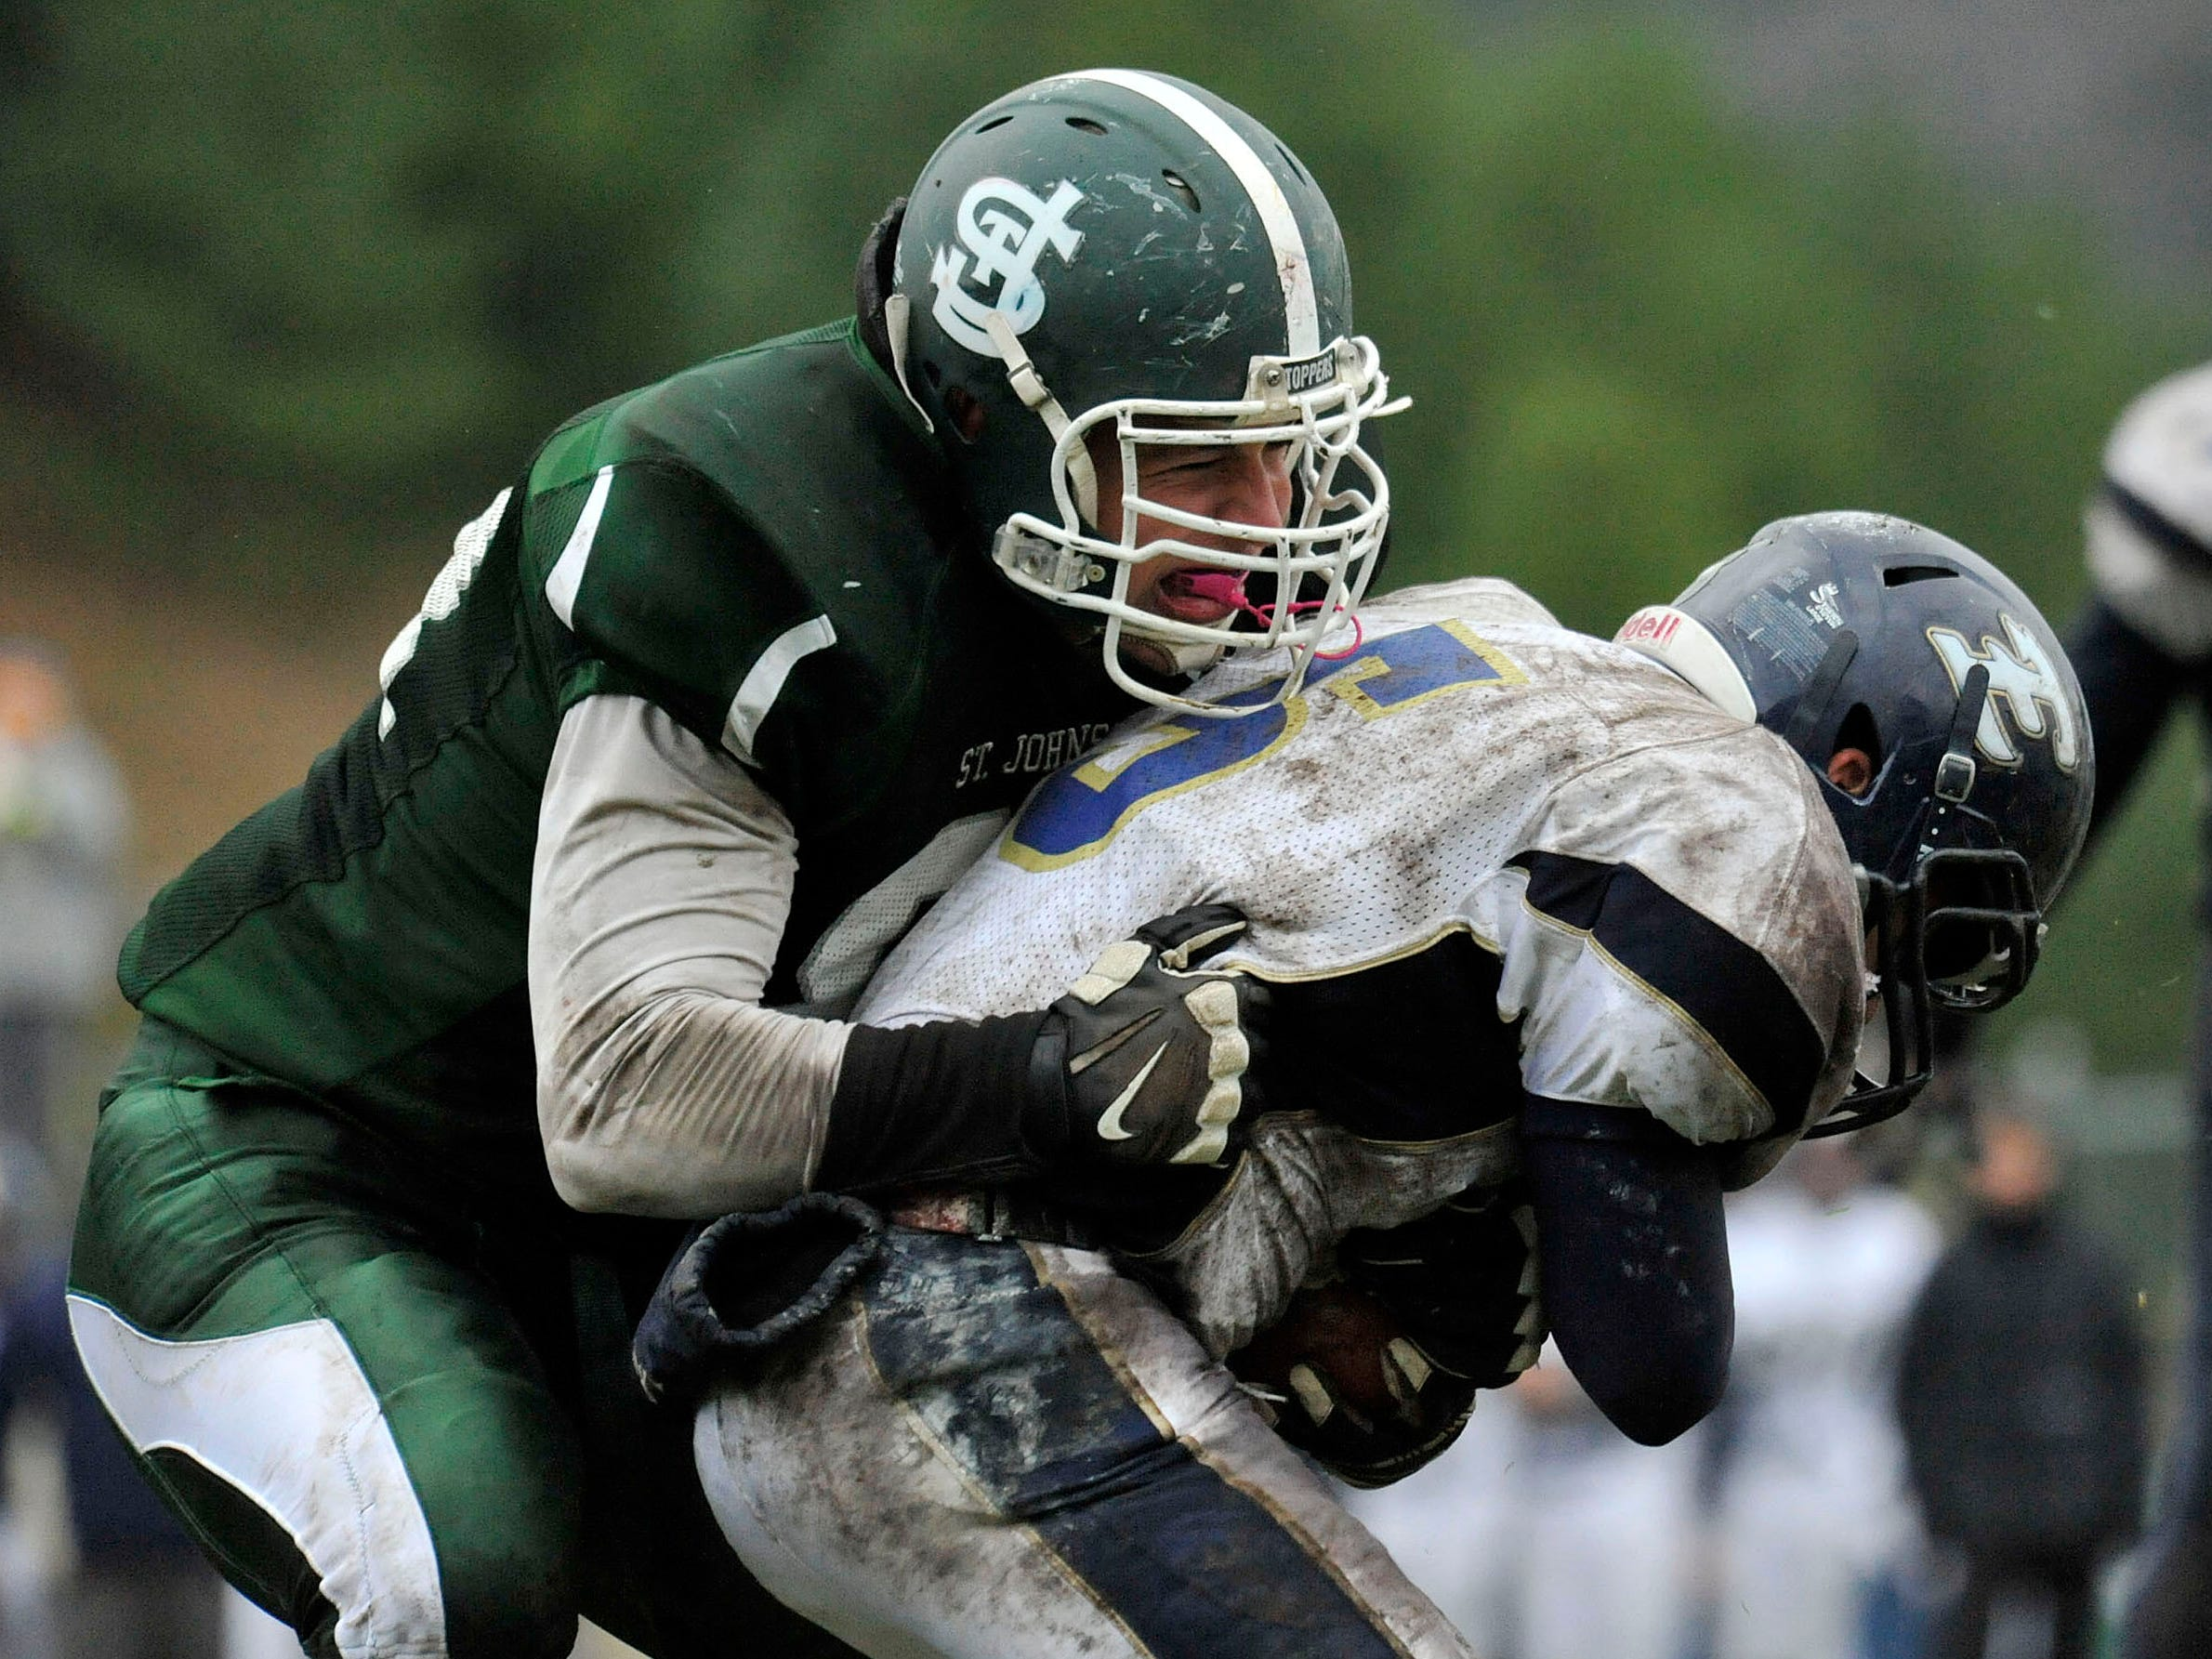 St. Johnsbury's Carlos Carrasco sends Essex runner Joey Robertson for a loss during the Hiltoppers' 26-6 win in last week's Division I semifinal.